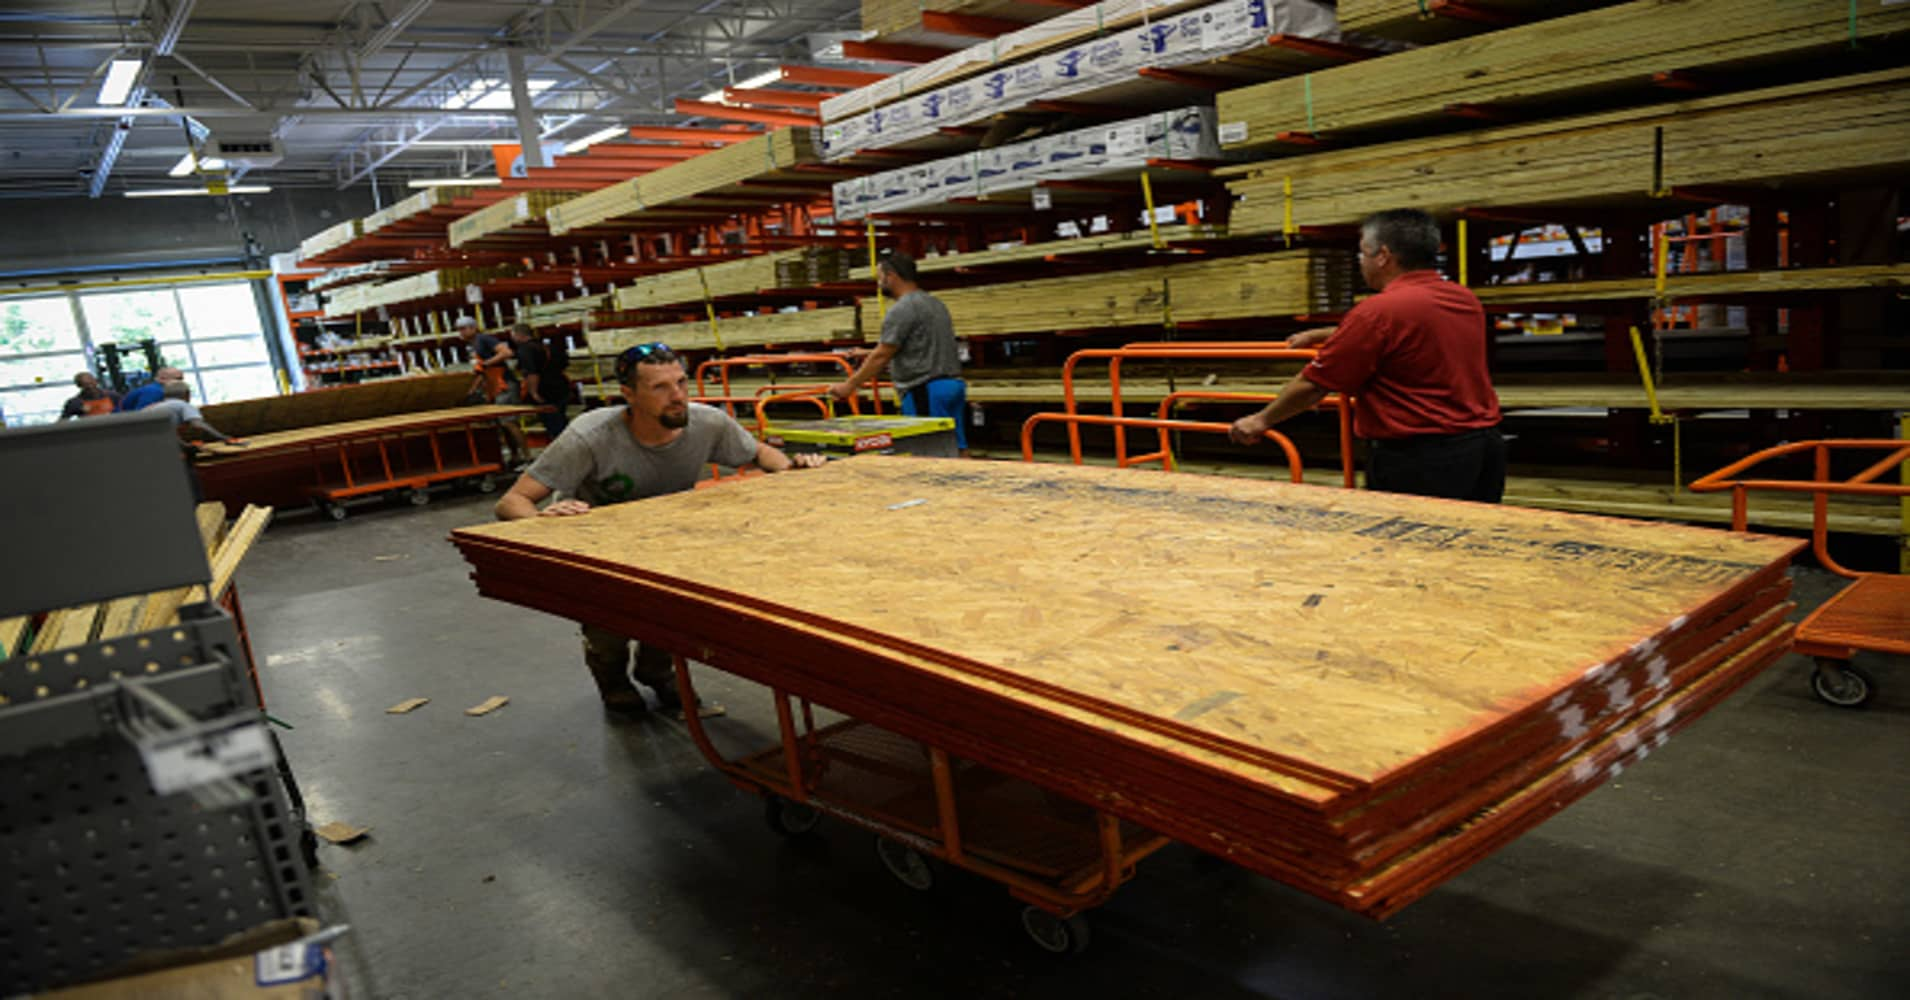 Bank Home Depot Home Depot Cut To Neutral At Bank Of America